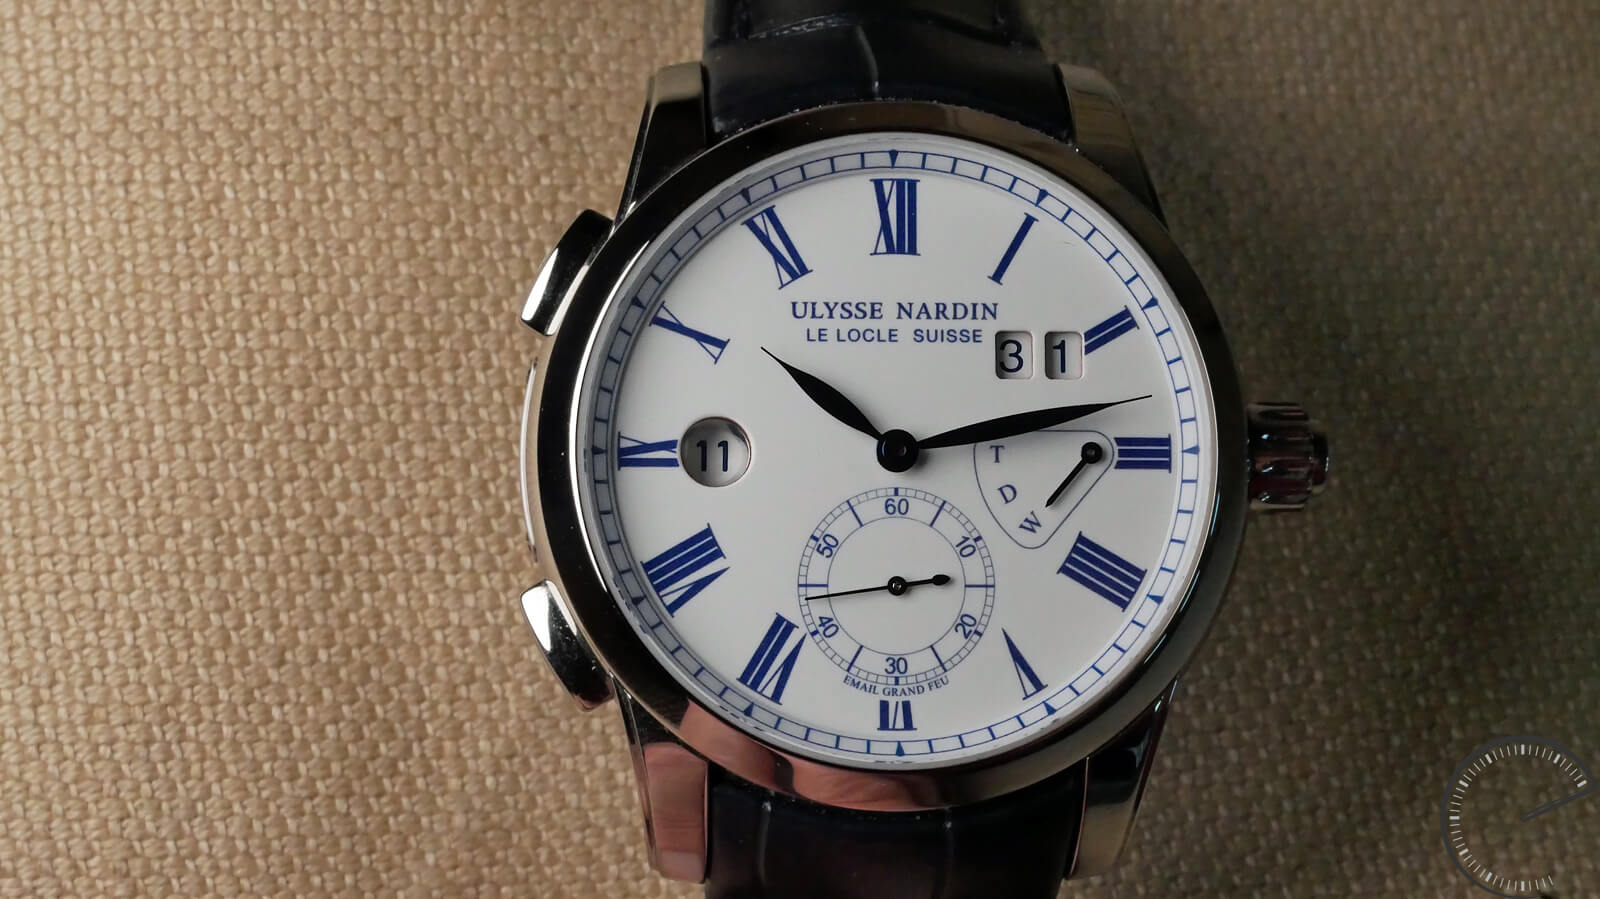 Ulysse Nardin Classic Dual Time Enamel - watch with GMT function and Grand Feu enamel dial